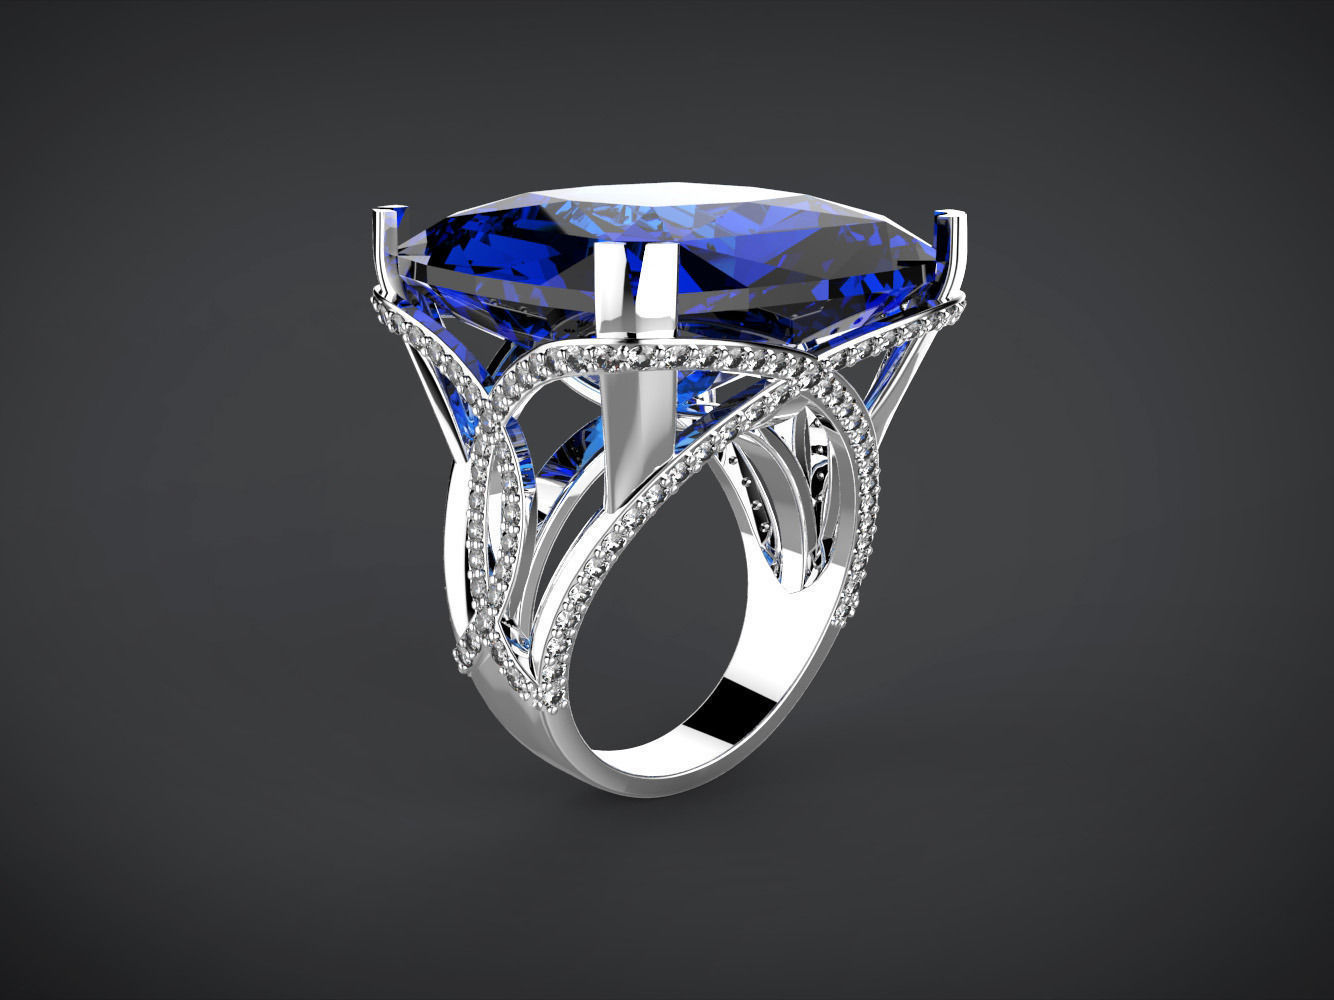 Big blue square stone ring 3D Model 3D printable STL 3DM ... on Granite Models  id=72320